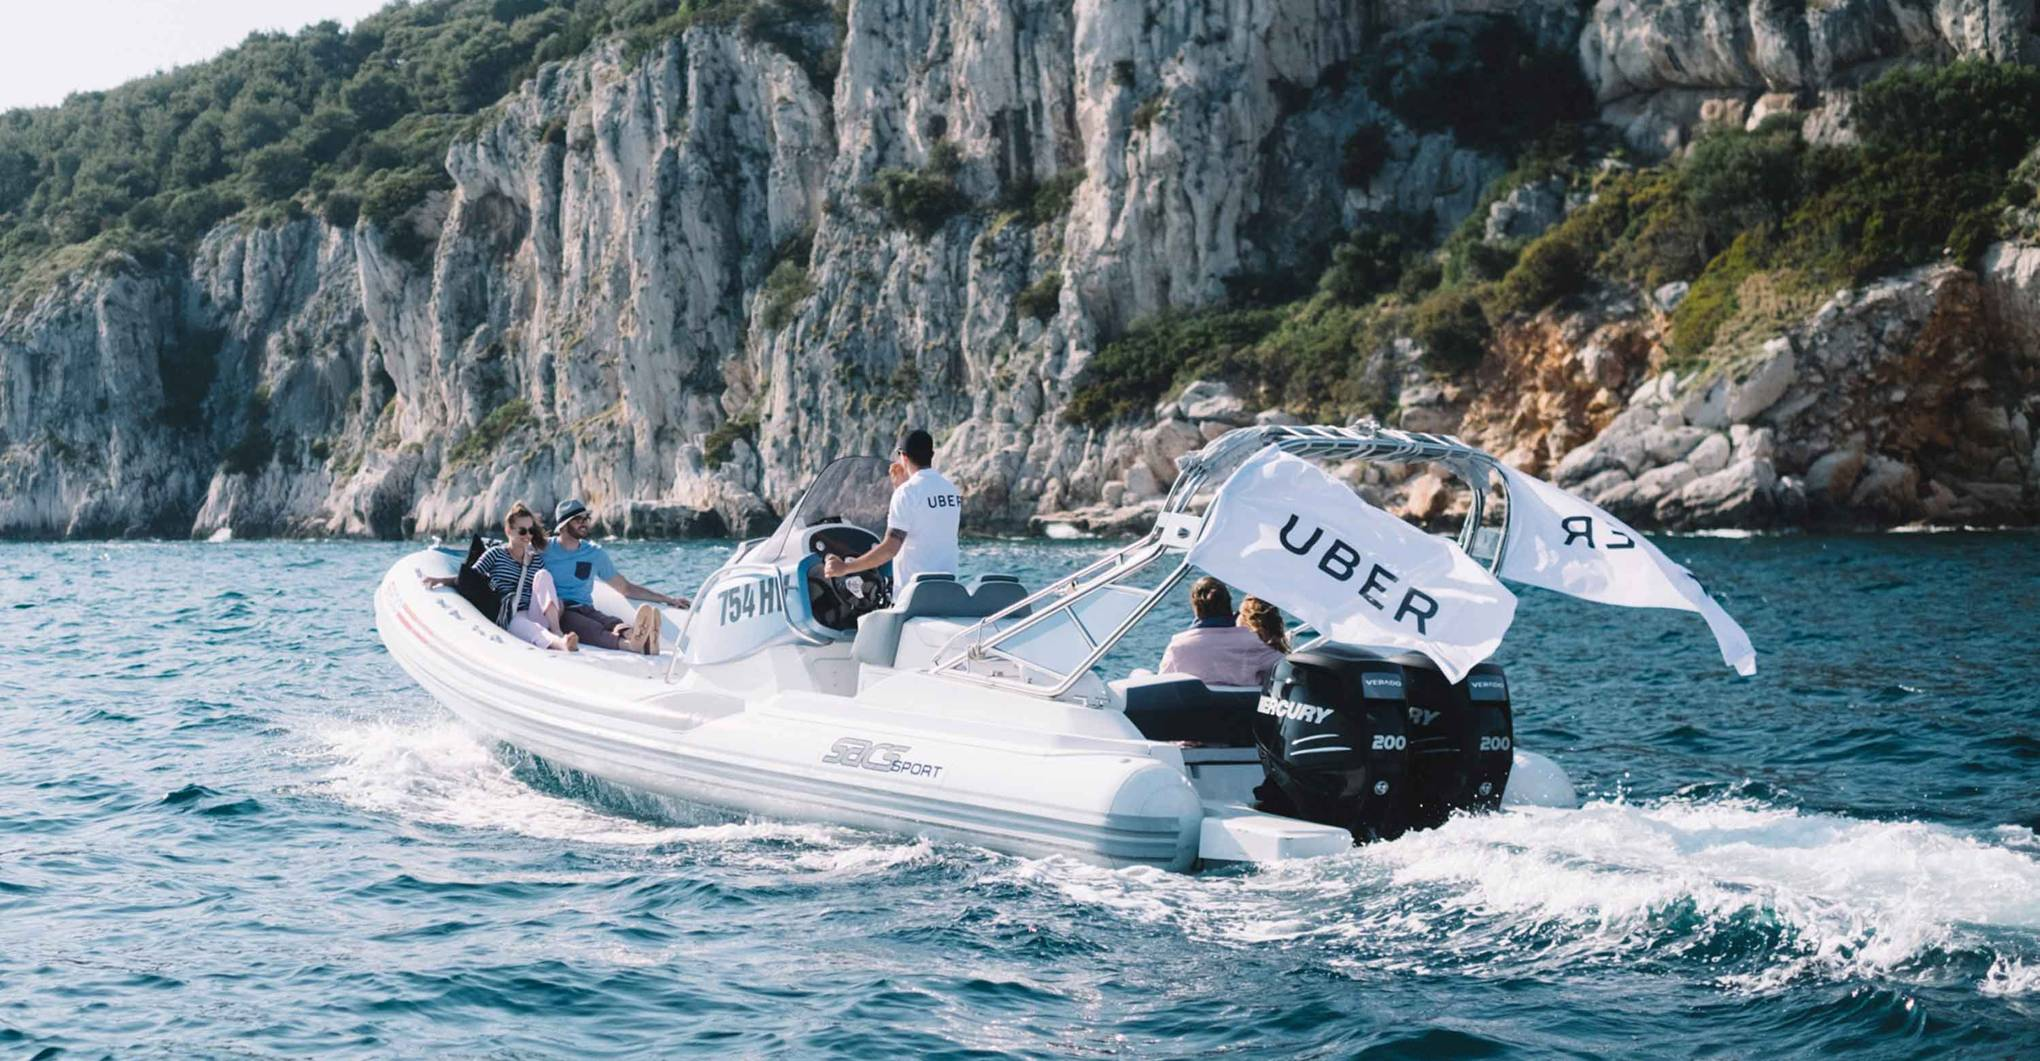 UberBOAT makes island-hopping in Croatia easier than ever